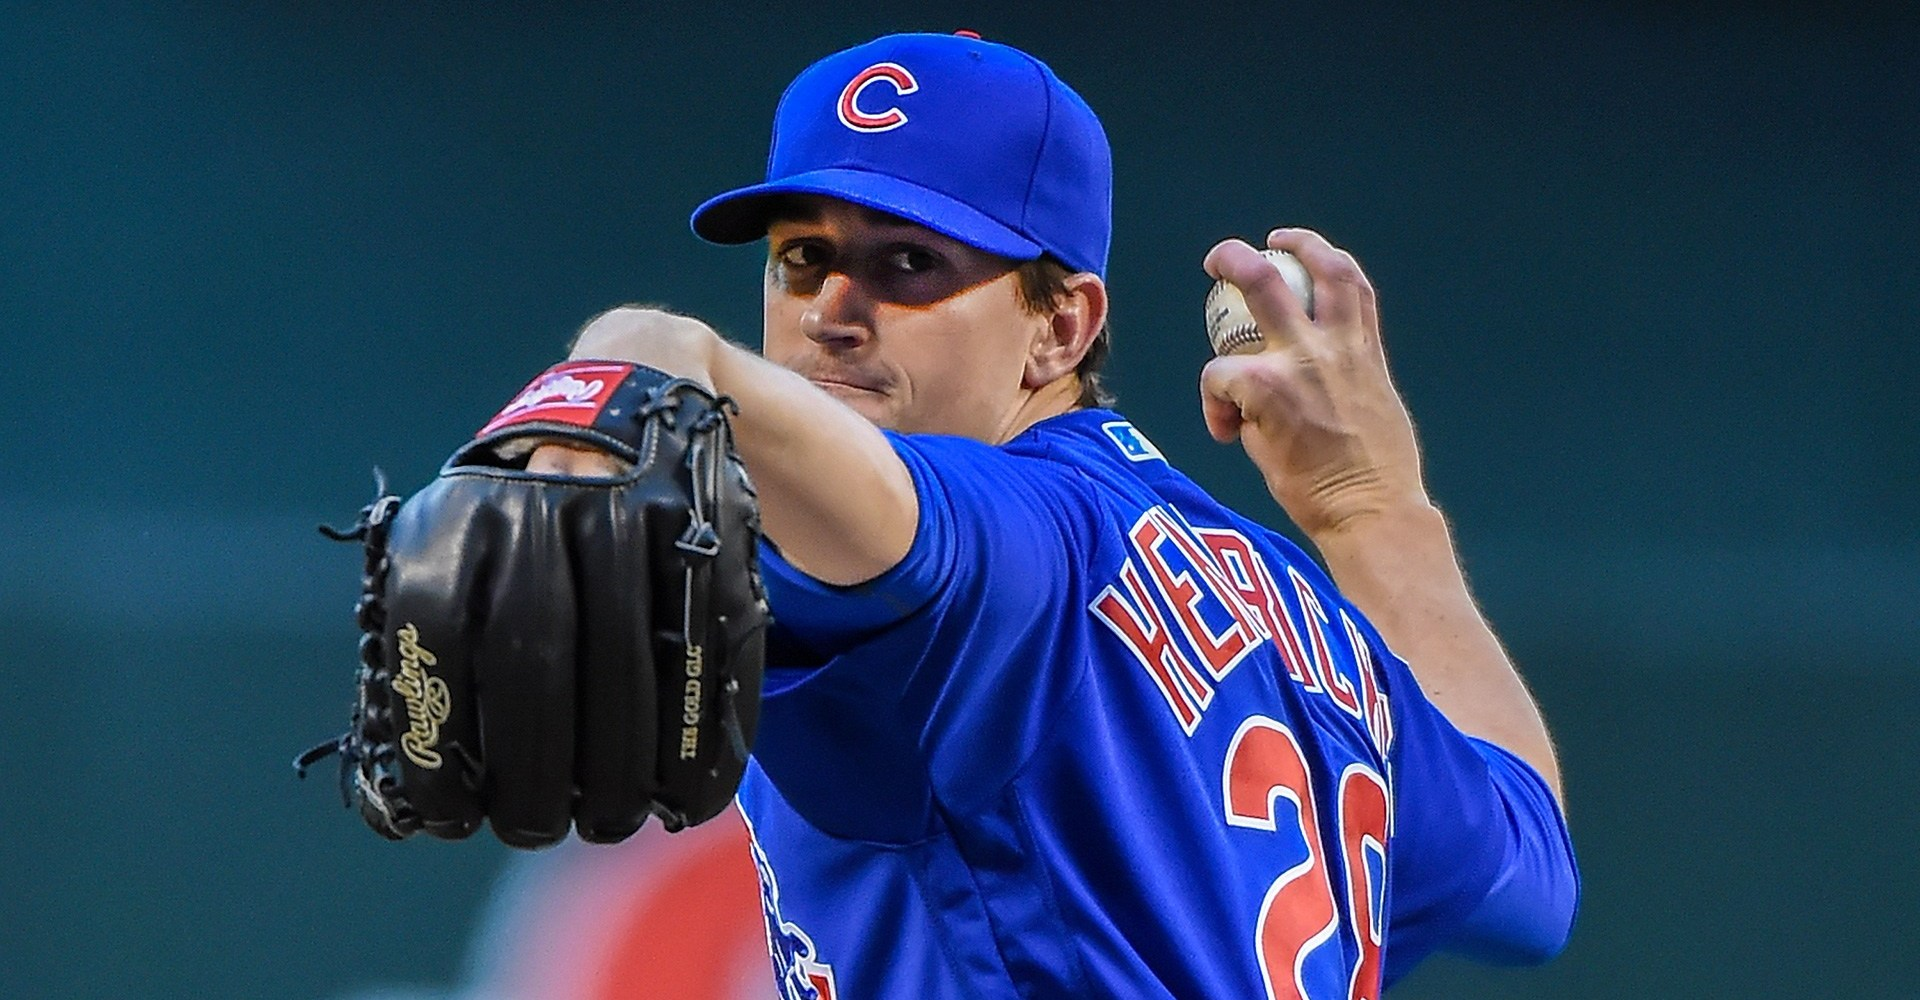 kyle hendricks 2019 chicago cubs